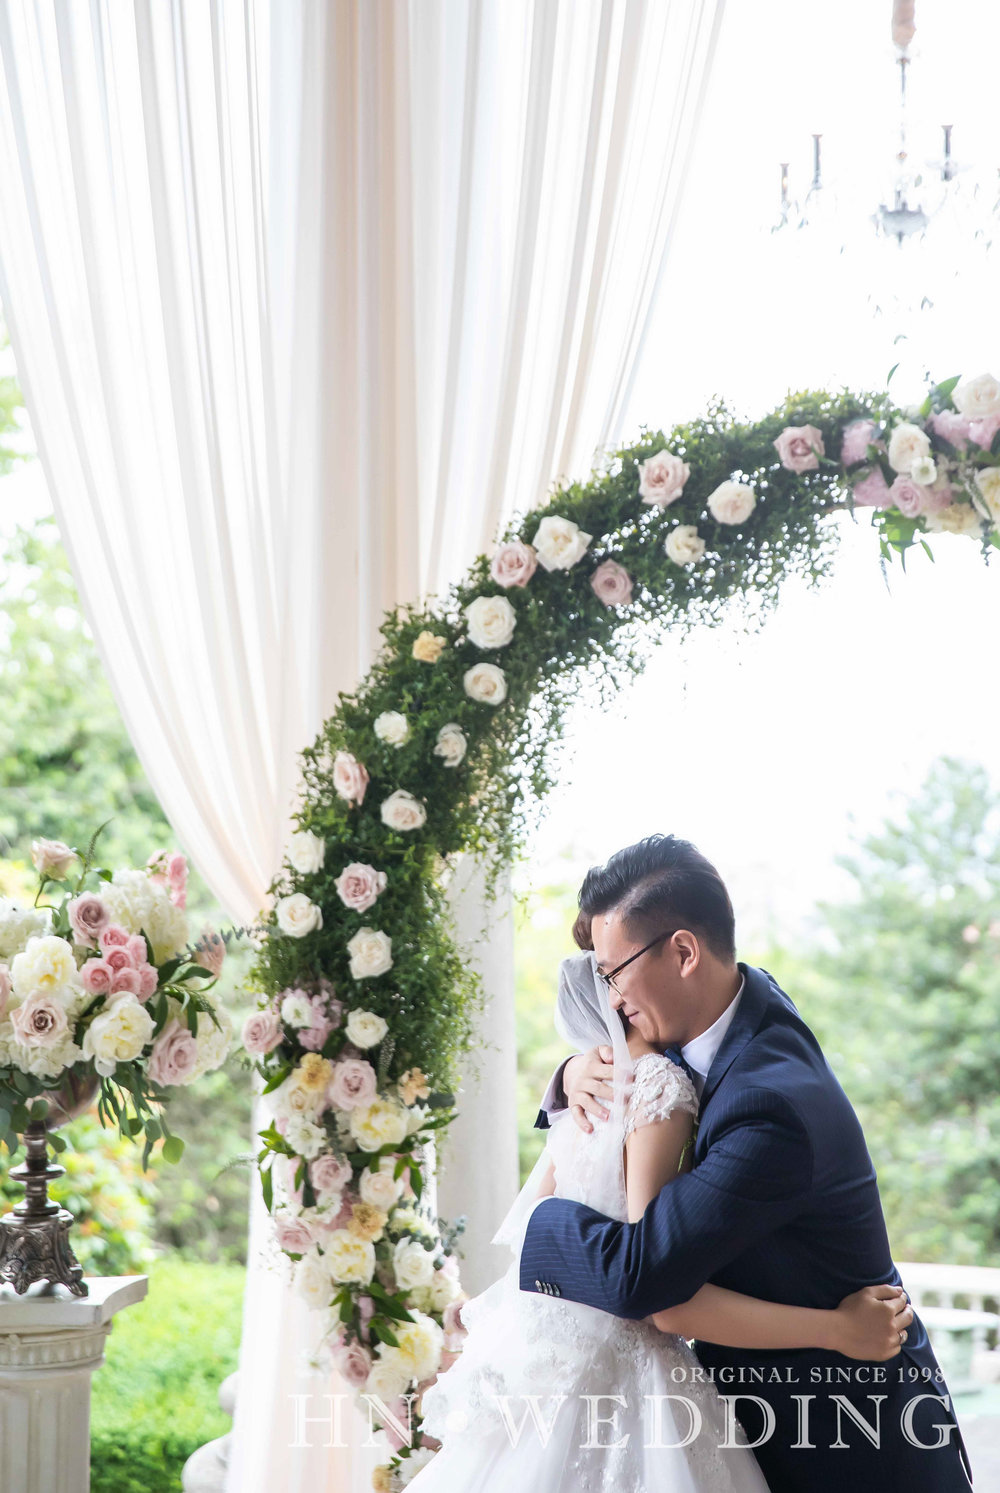 hnweddingweddingday10192018-2-11.jpg